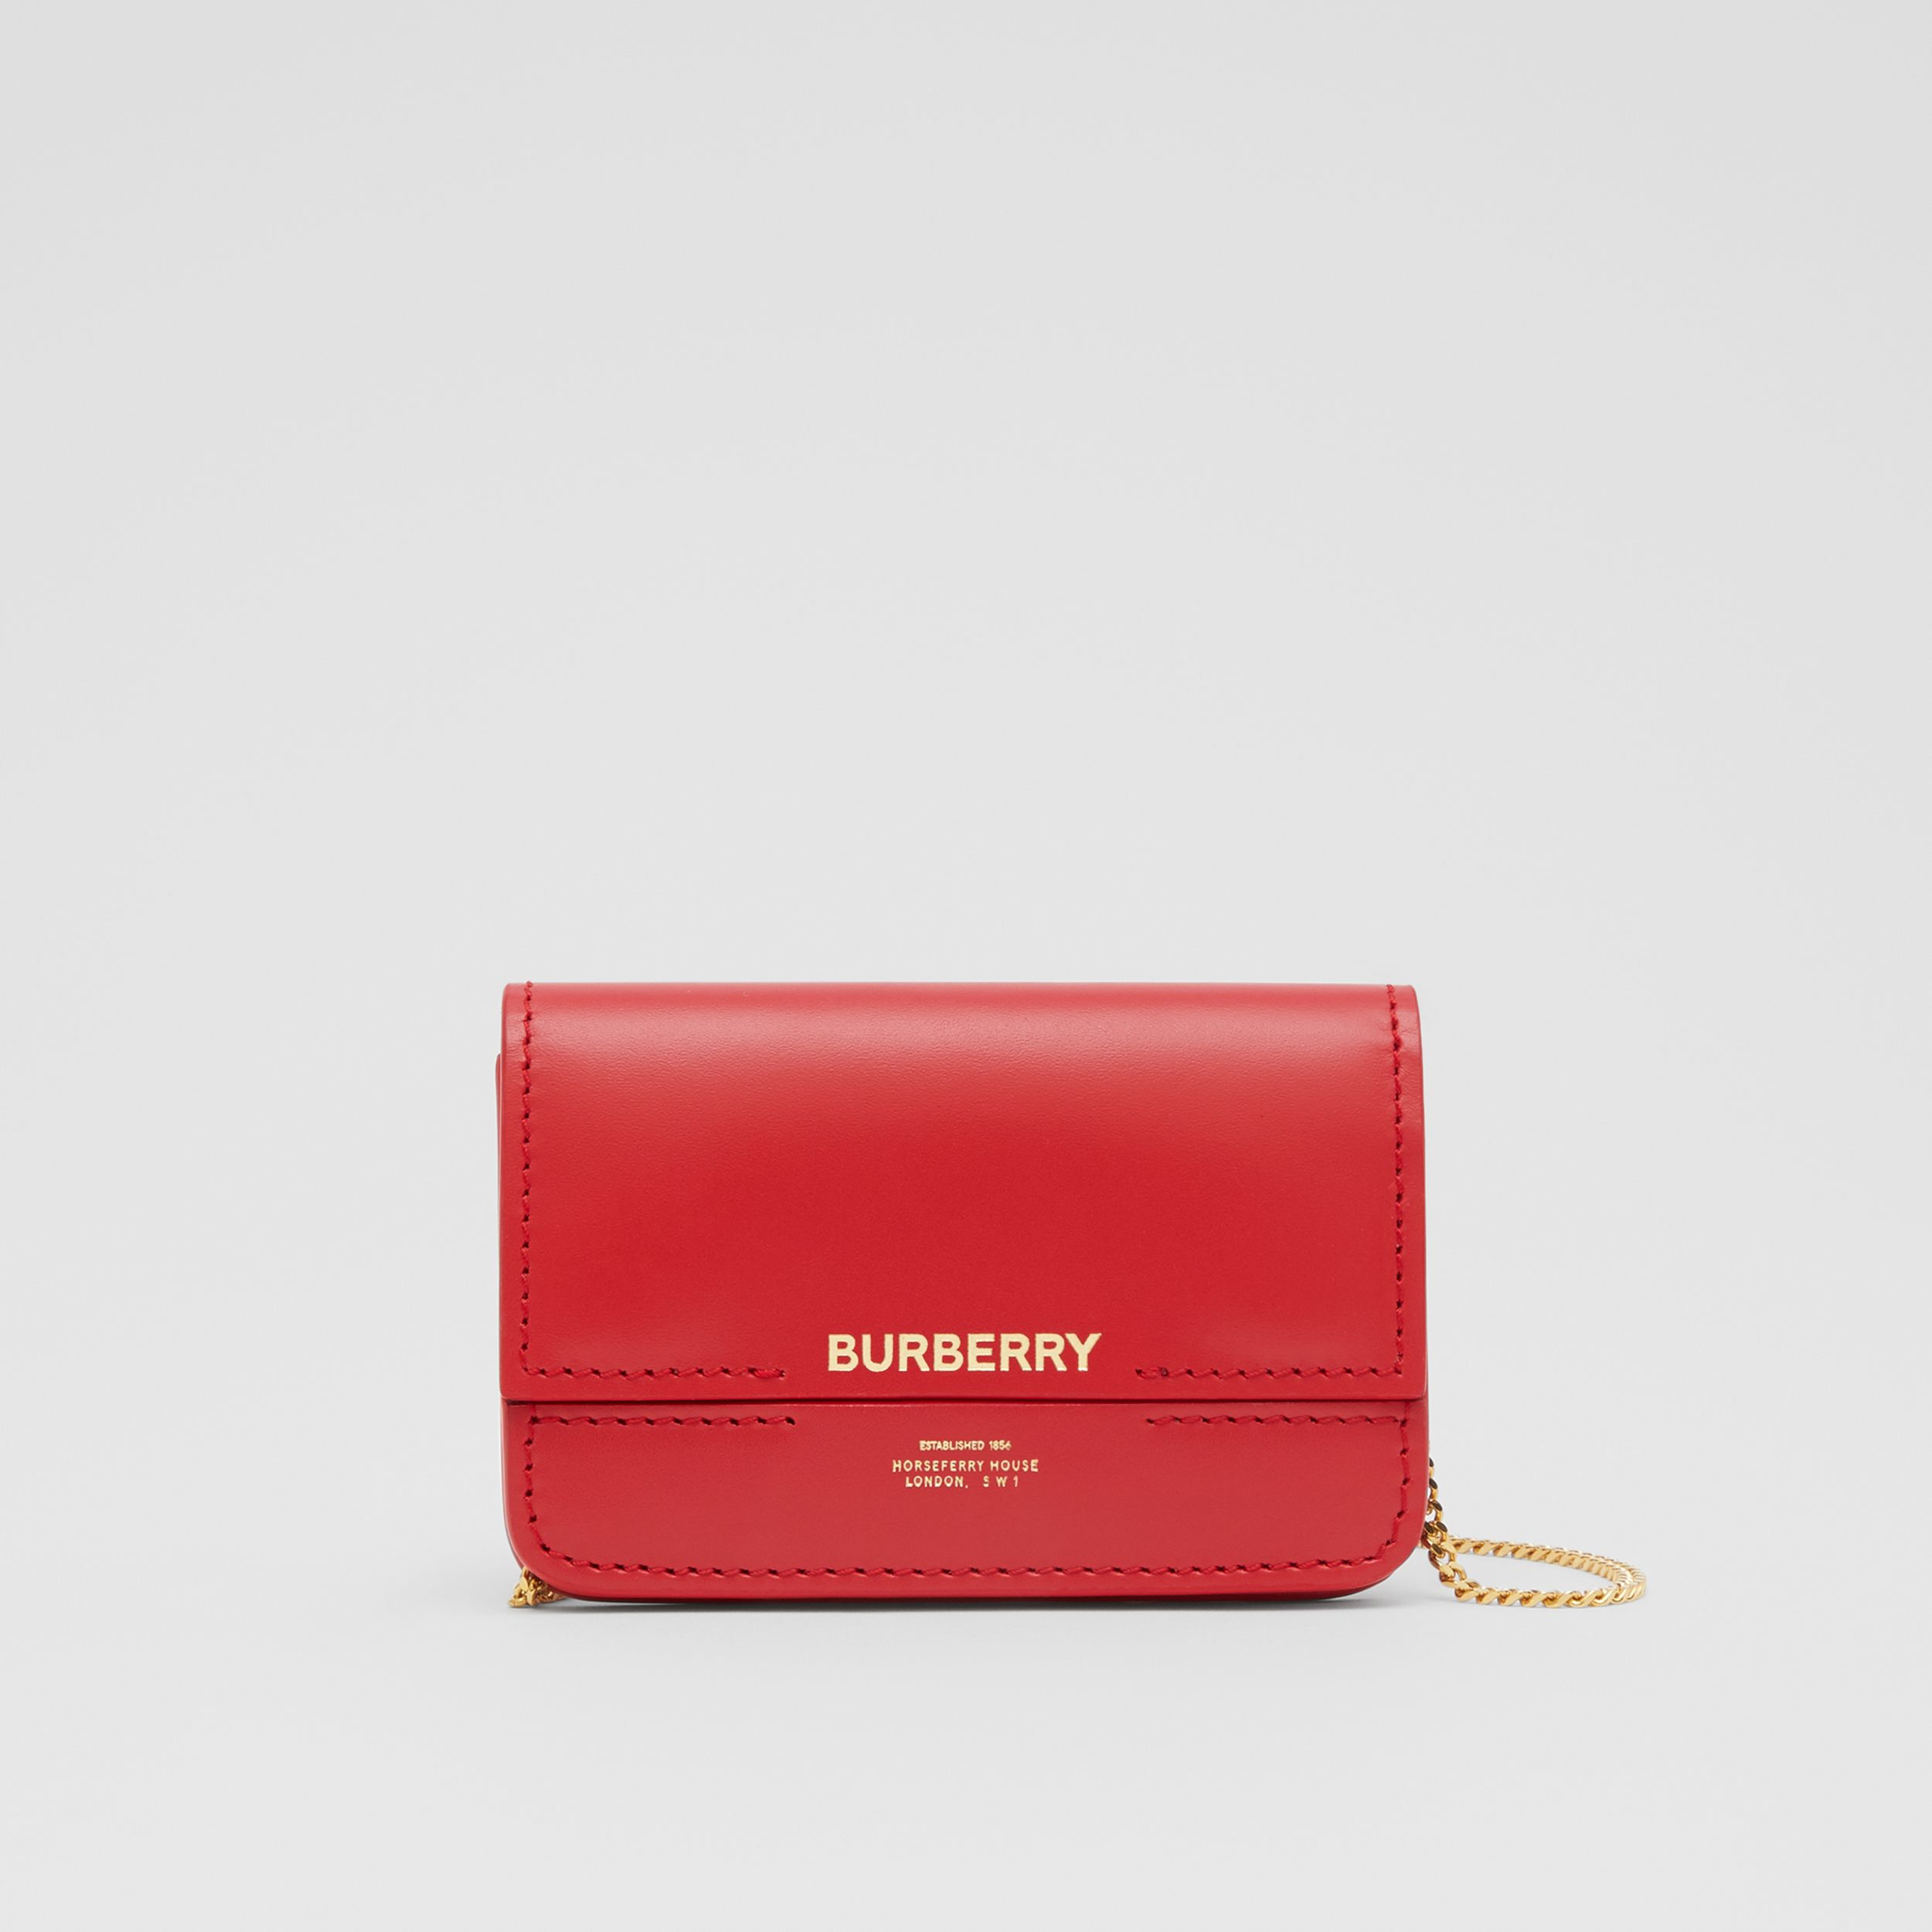 Two-tone Leather Card Case with Chain Strap in Red | Burberry - 1